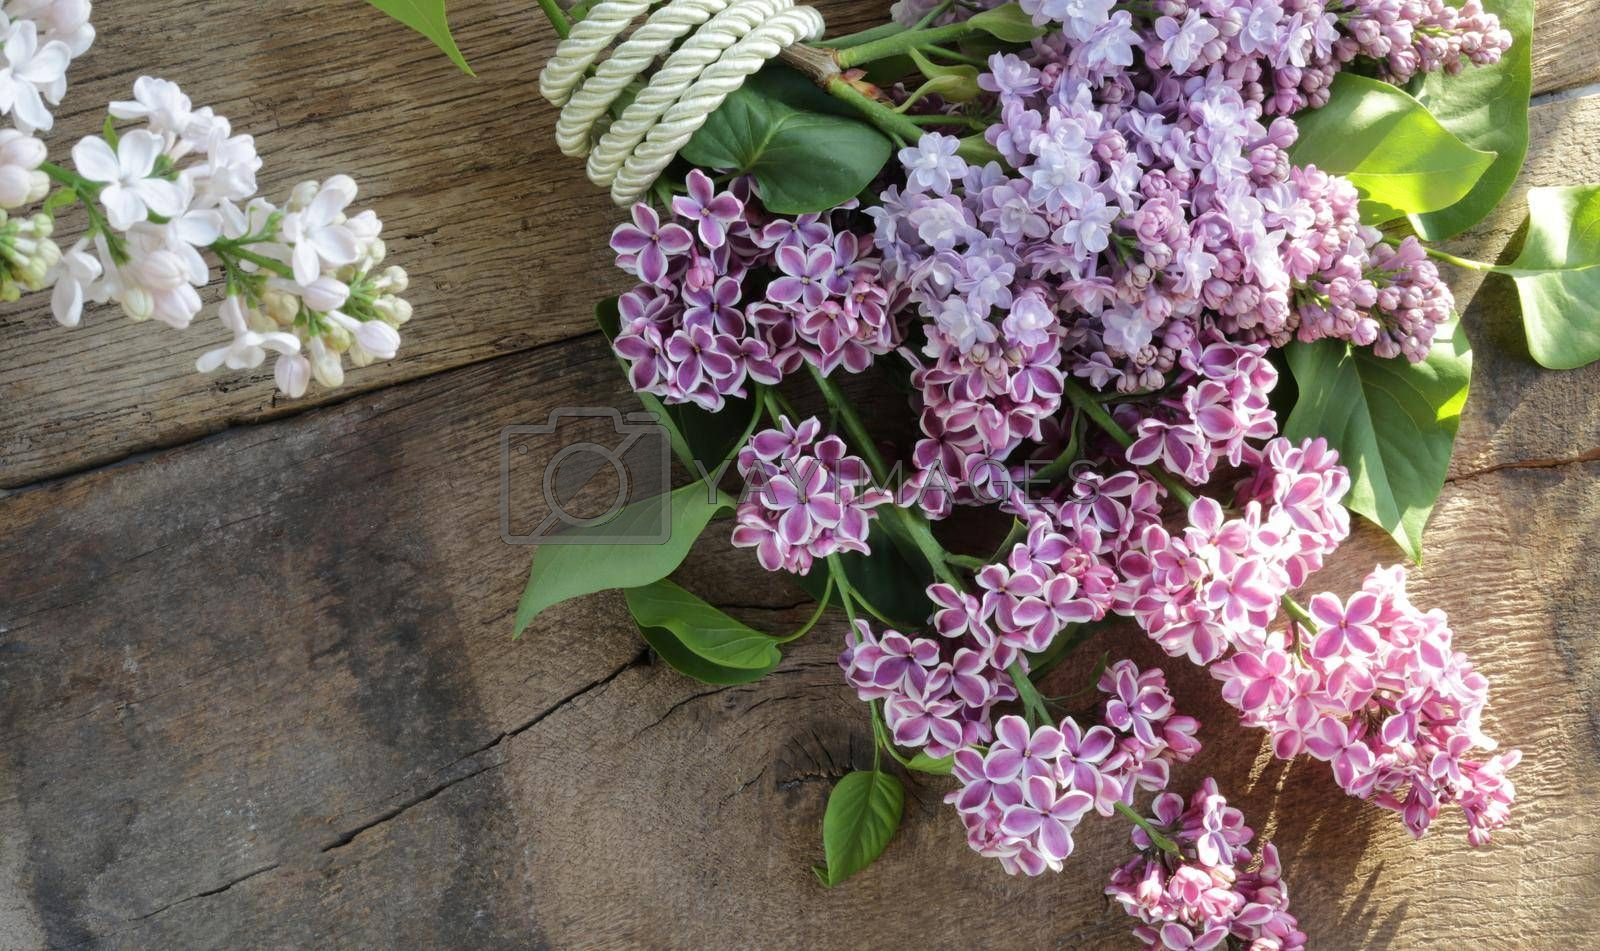 Spring fresh flower background. Lilac flowers on rustic grunge old wood background. Morning light, flat lay